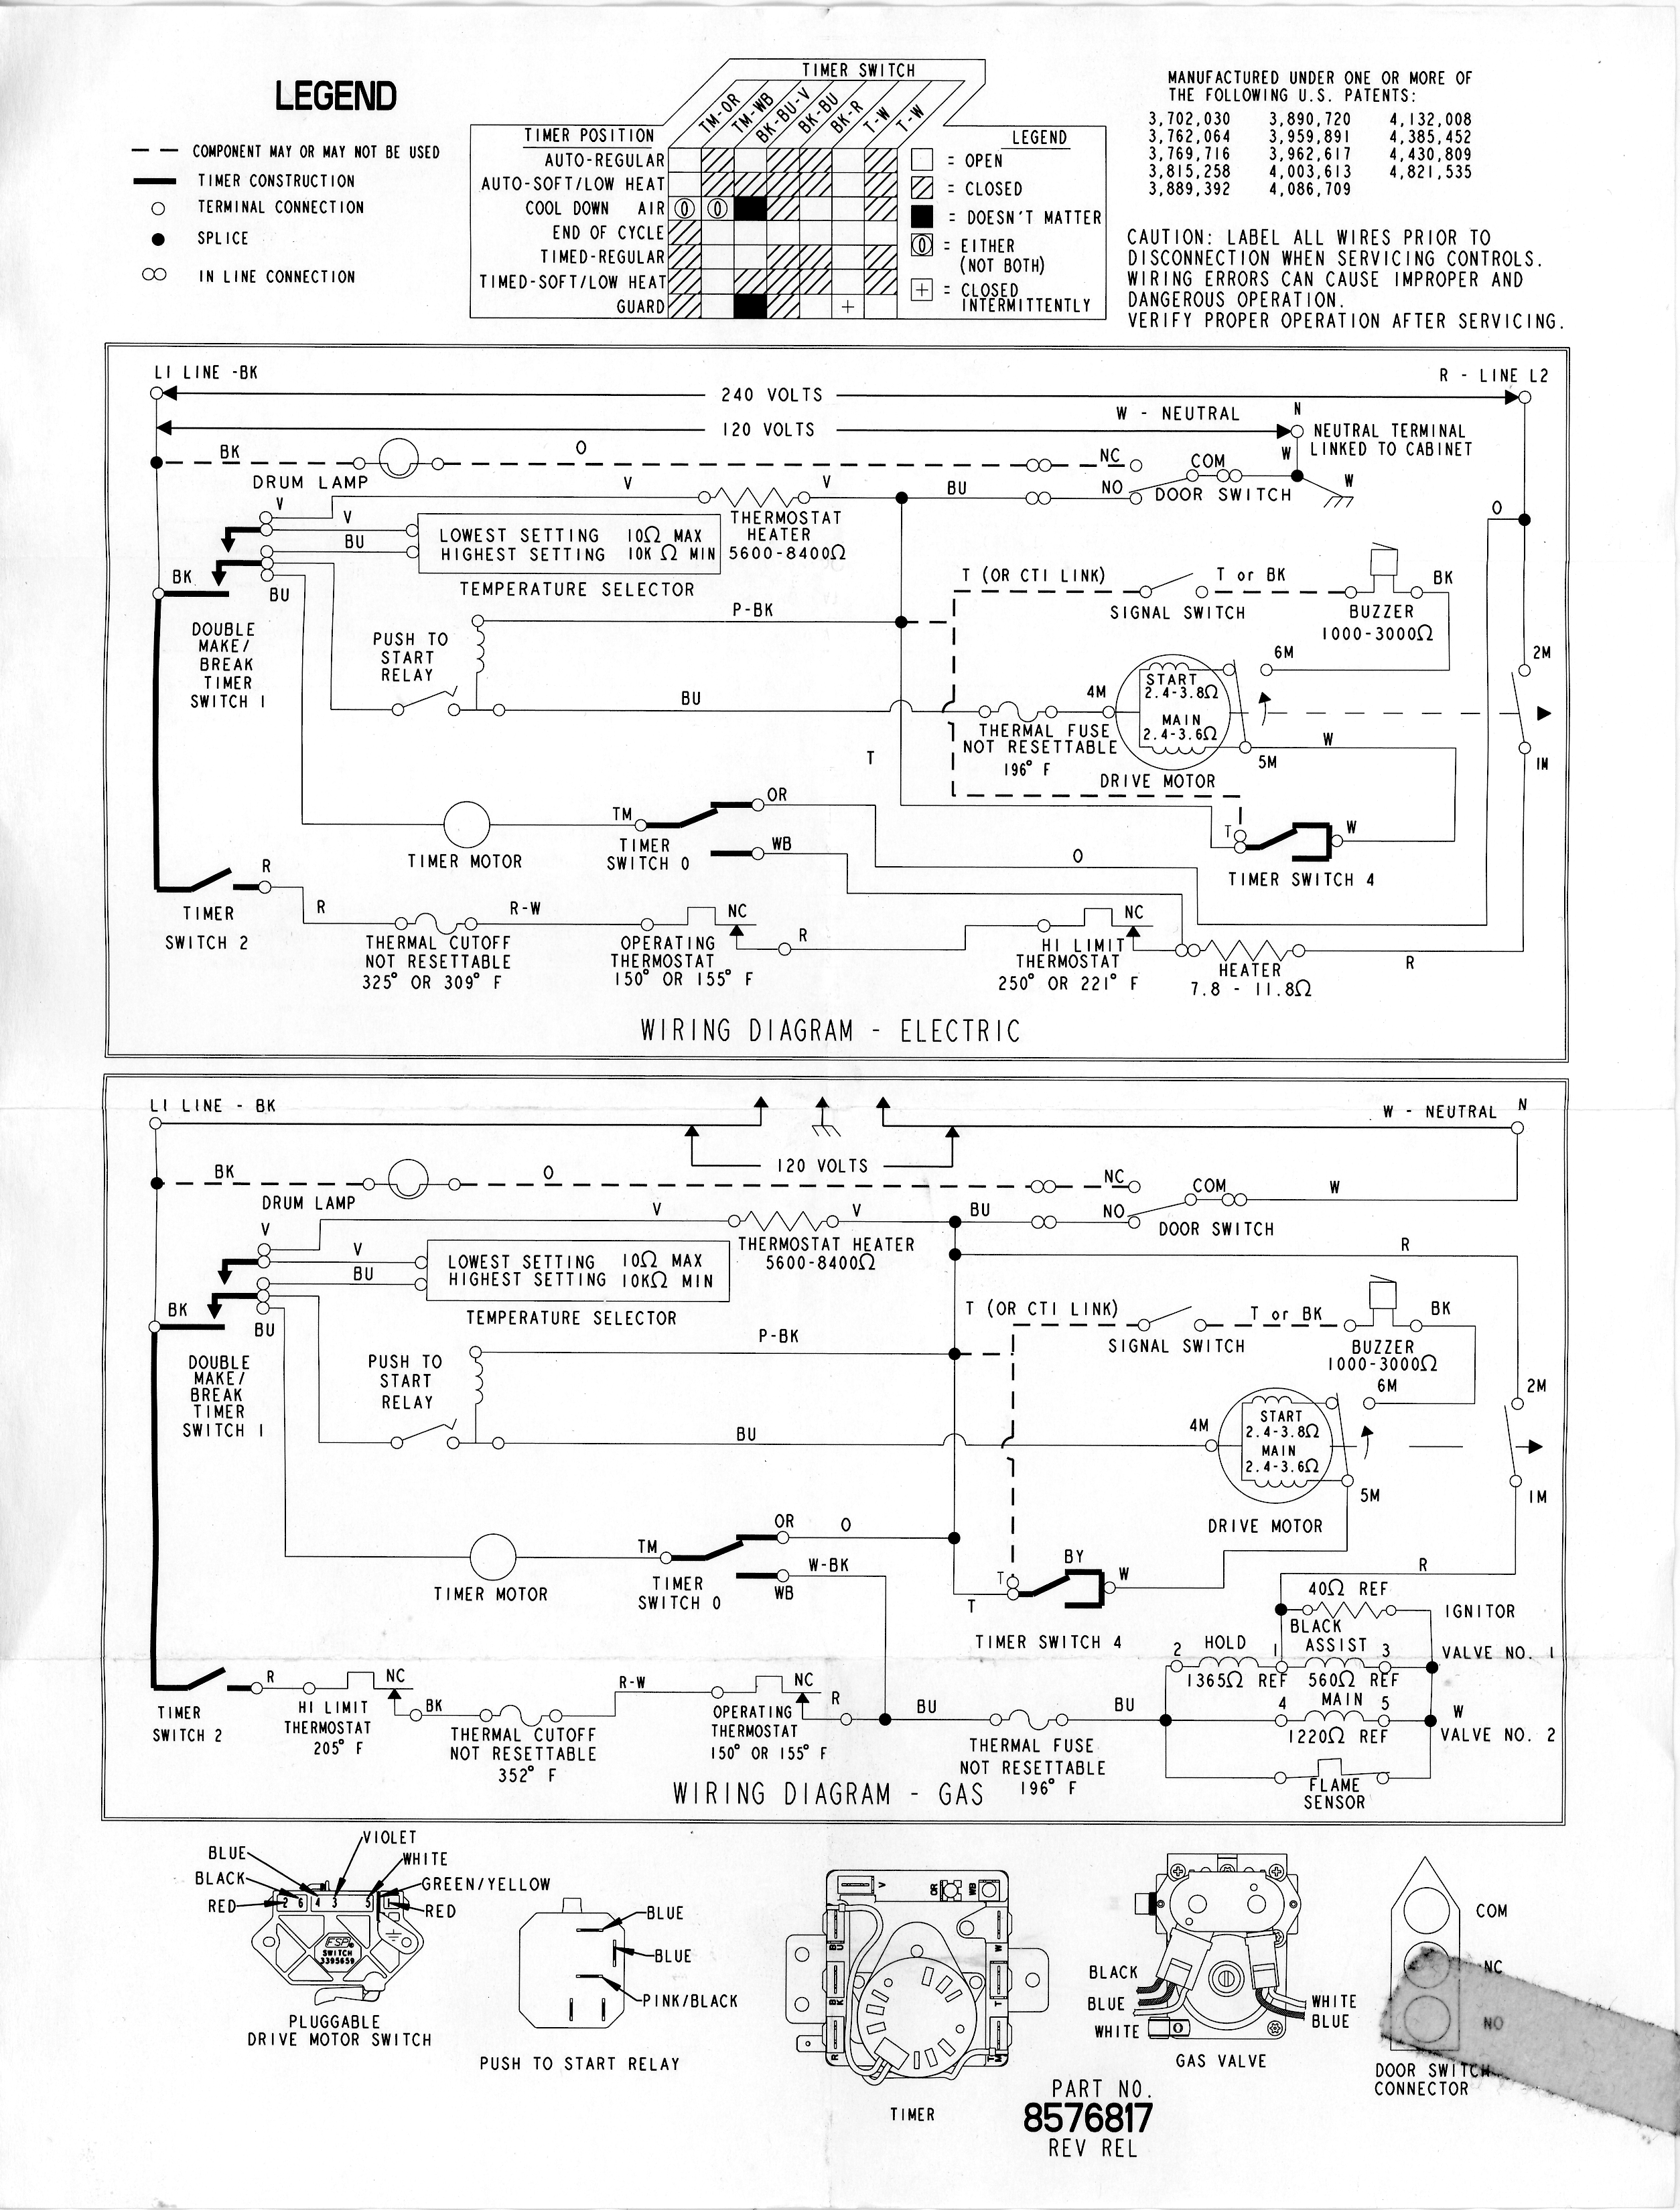 Whirlpool Dryer Schematic - 351 Cleveland Wiring Diagram for Wiring Diagram  Schematics | Whirlpool Schematic Diagrams |  | Wiring Diagram Schematics